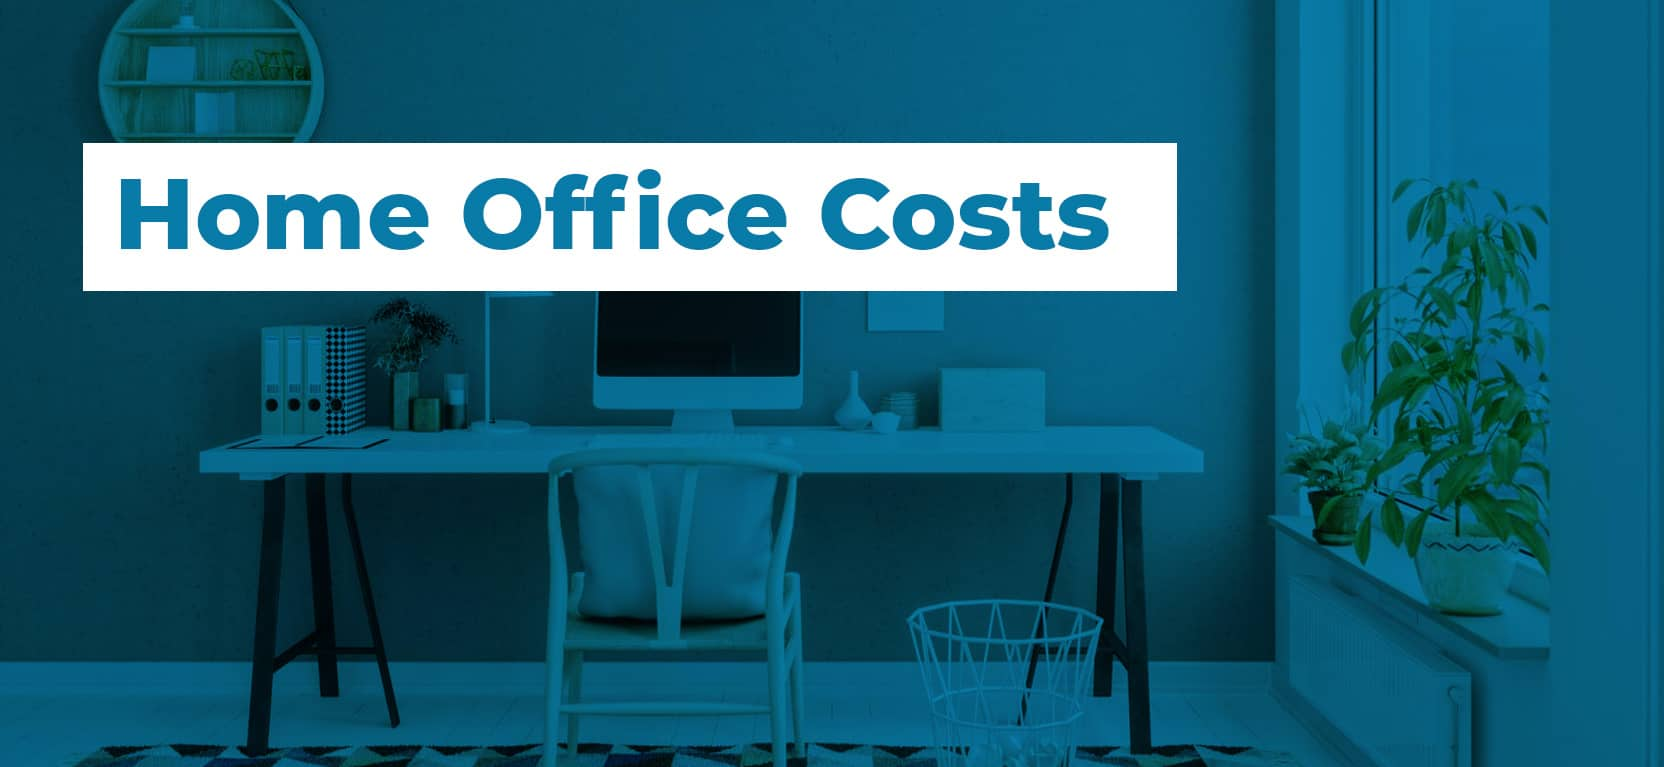 08 Home Office Costs2